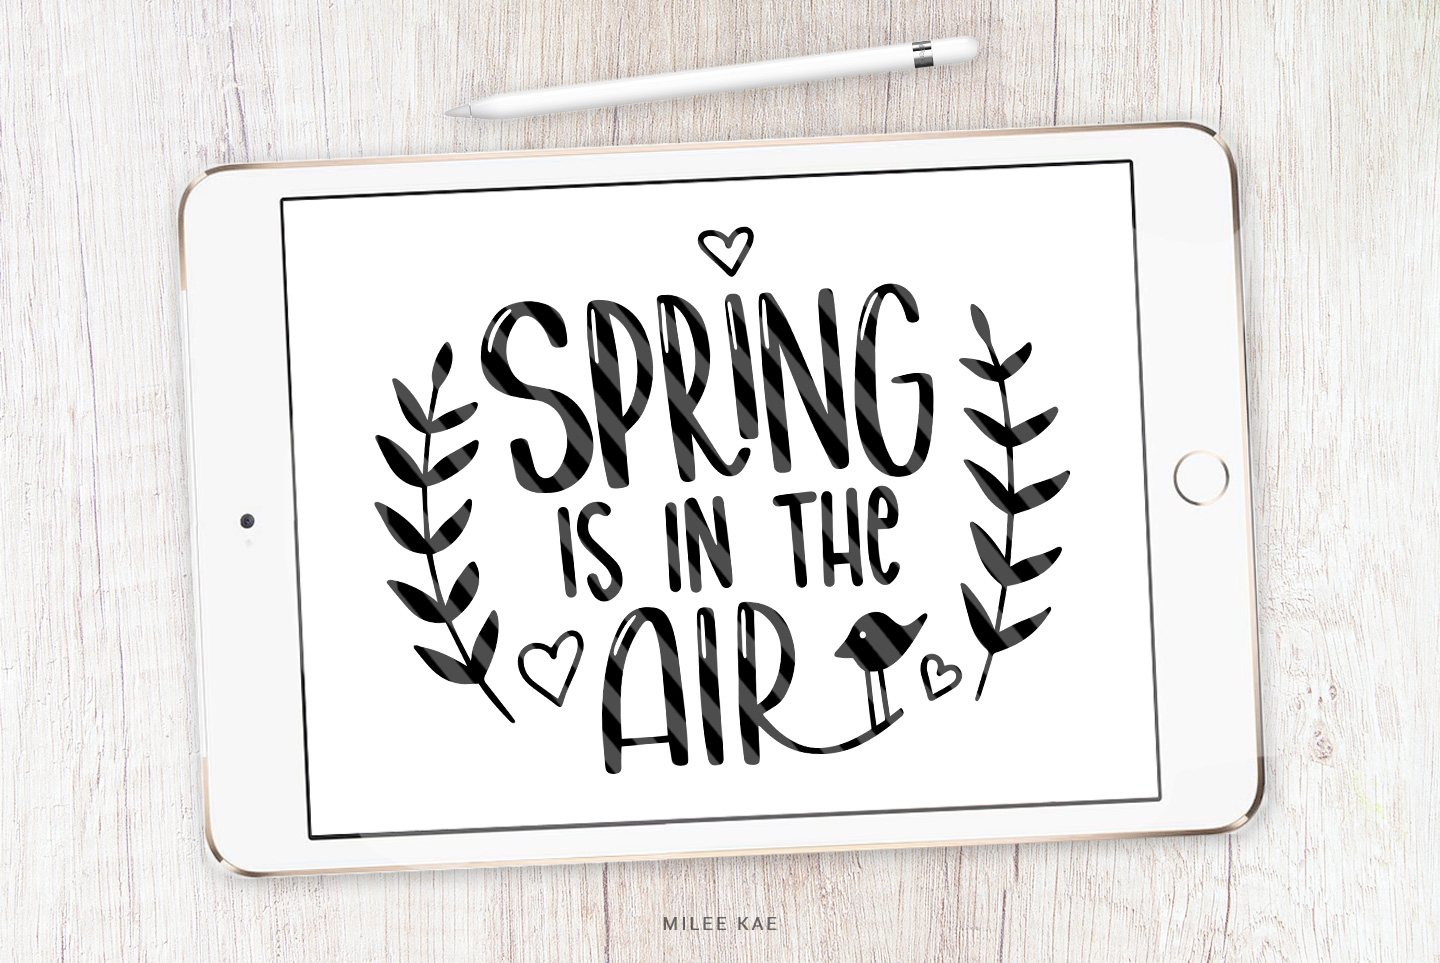 Spring Quote SVG, Cutting file, Decal example image 1